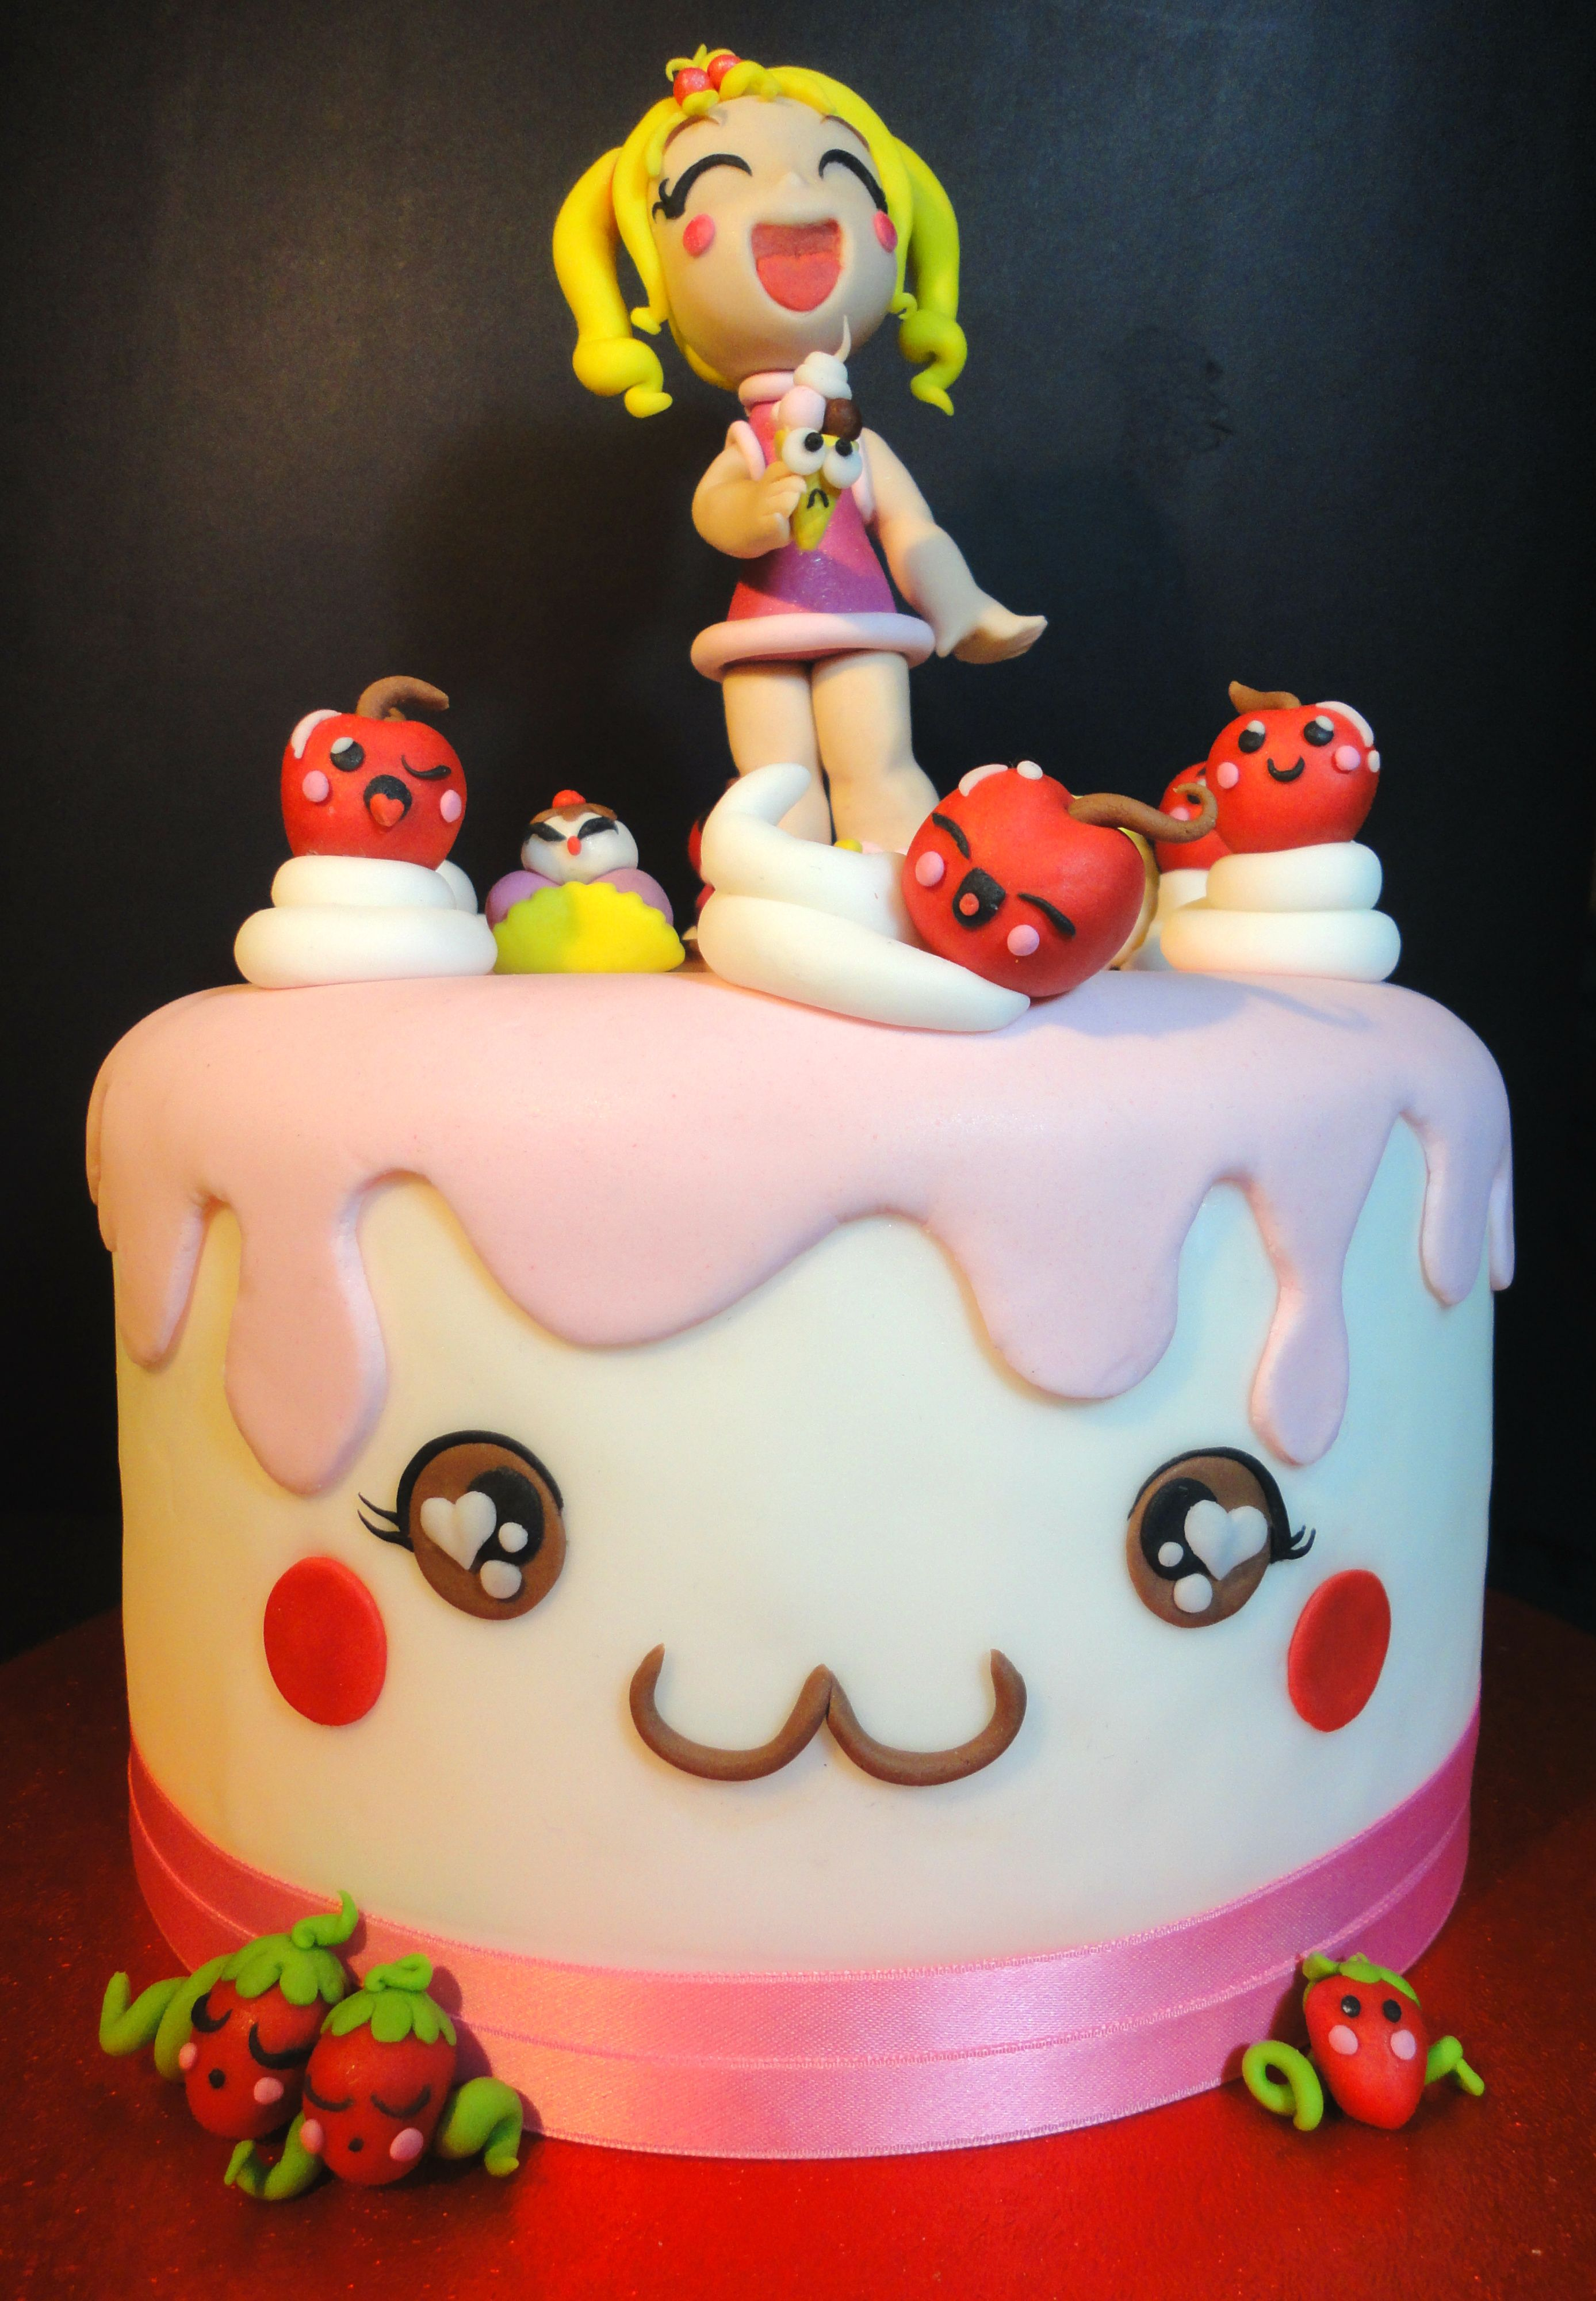 Kawaii Cake Cake Pinterest Kawaii Cake and Birthday cakes